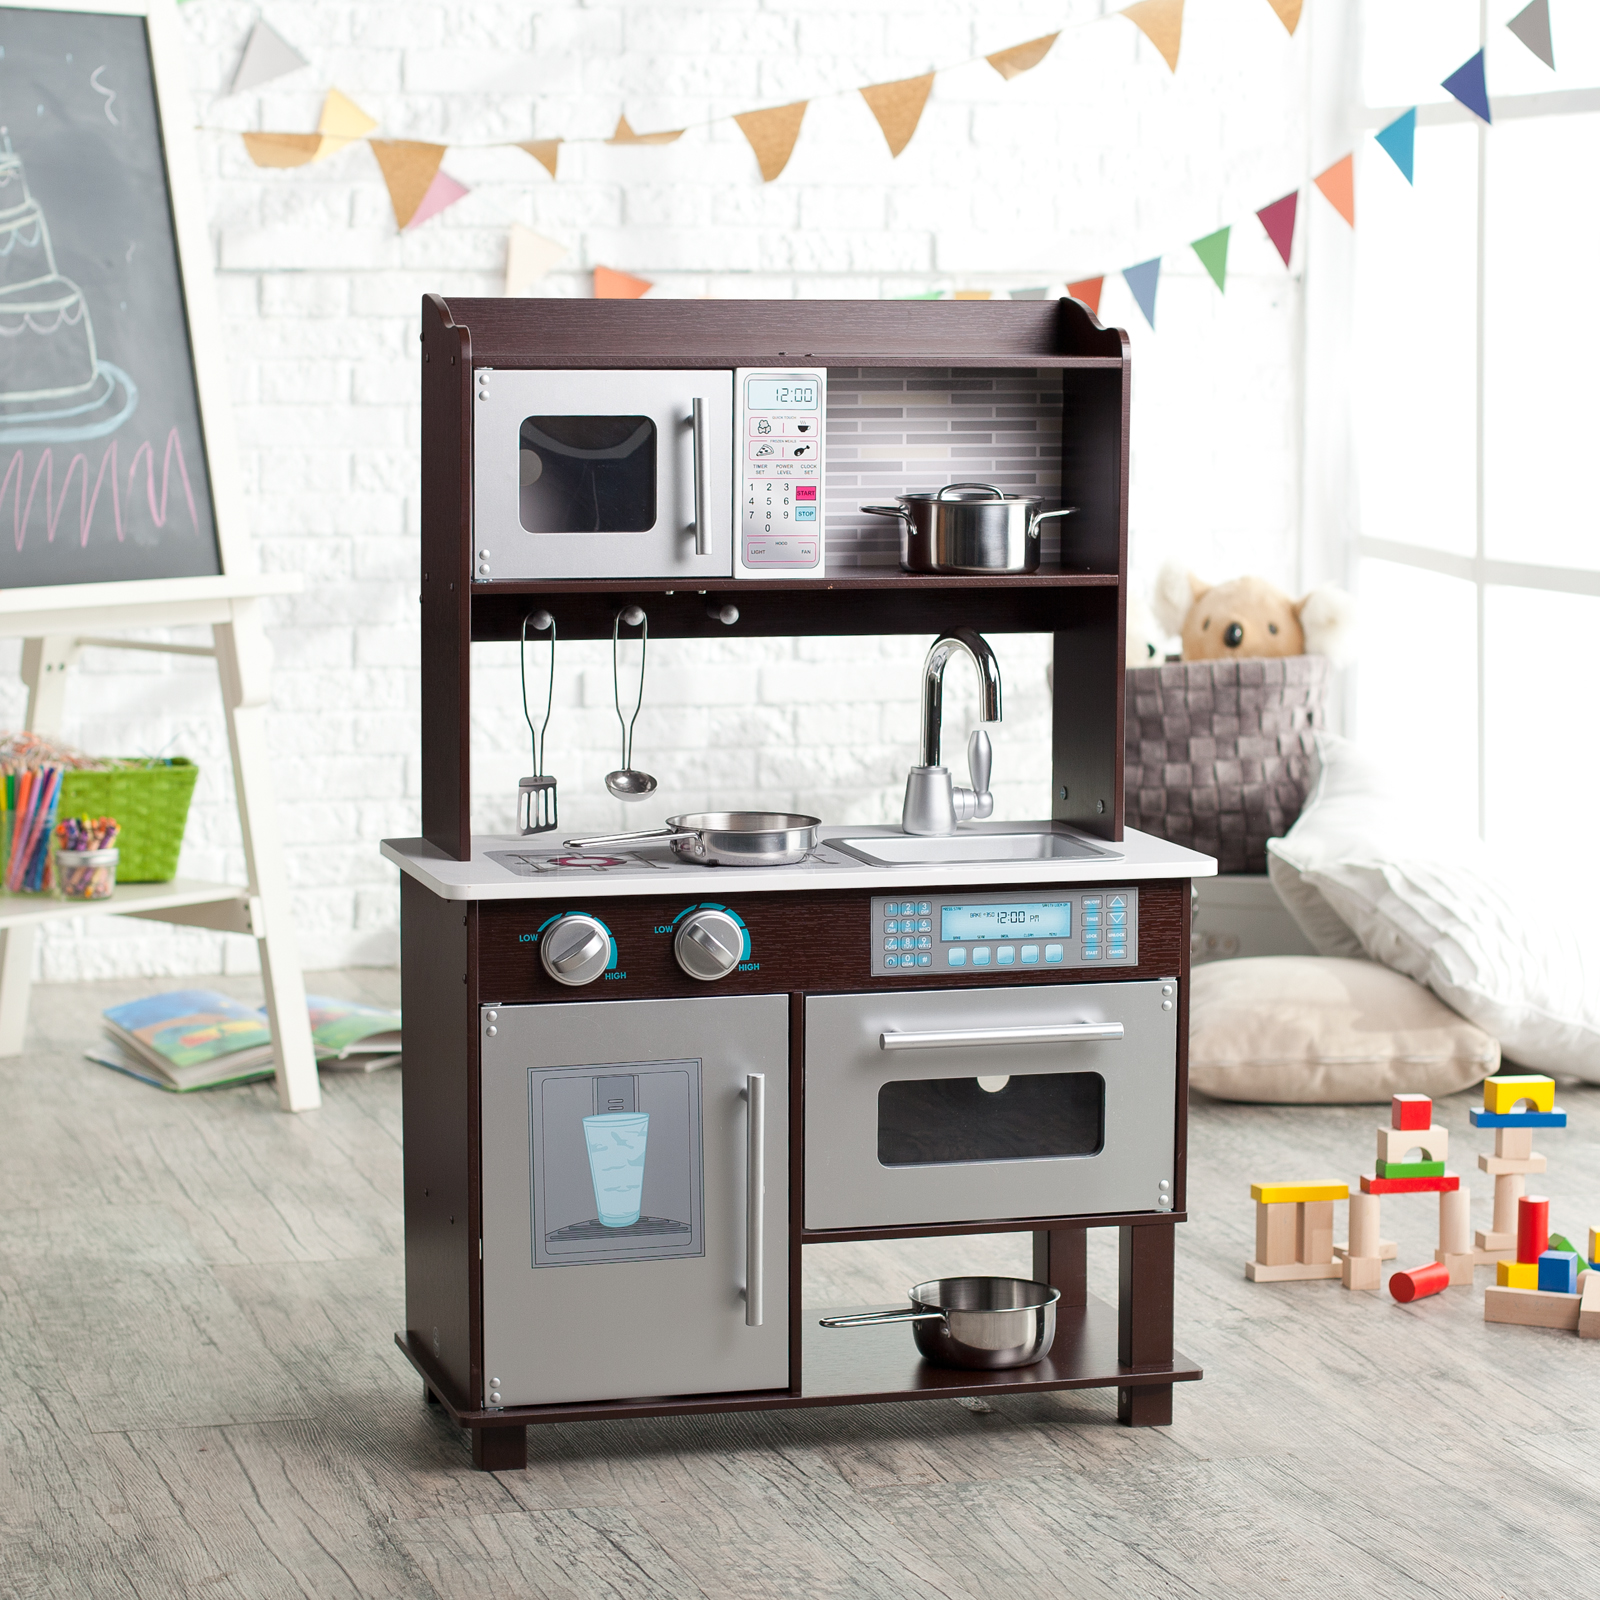 KidKraft Espresso Toddler Play Kitchen with Metal Accessory Set  53281  Play Kitchens at Hayneedle